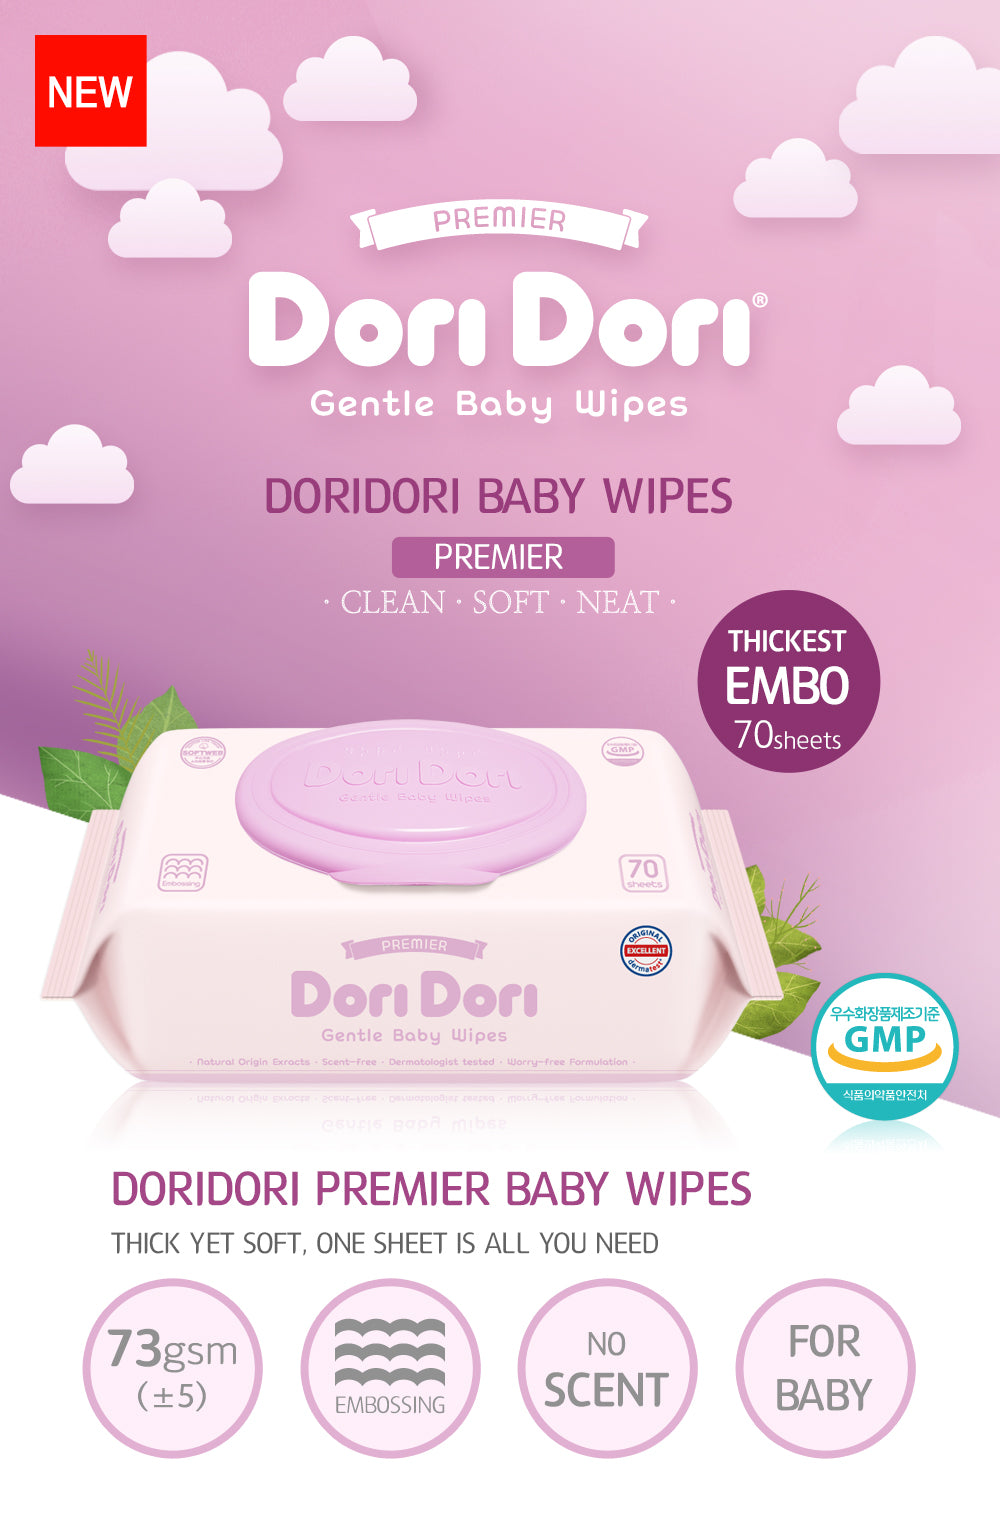 Dori Dori Premier Embossing CAP 70 sheets x 10 packs